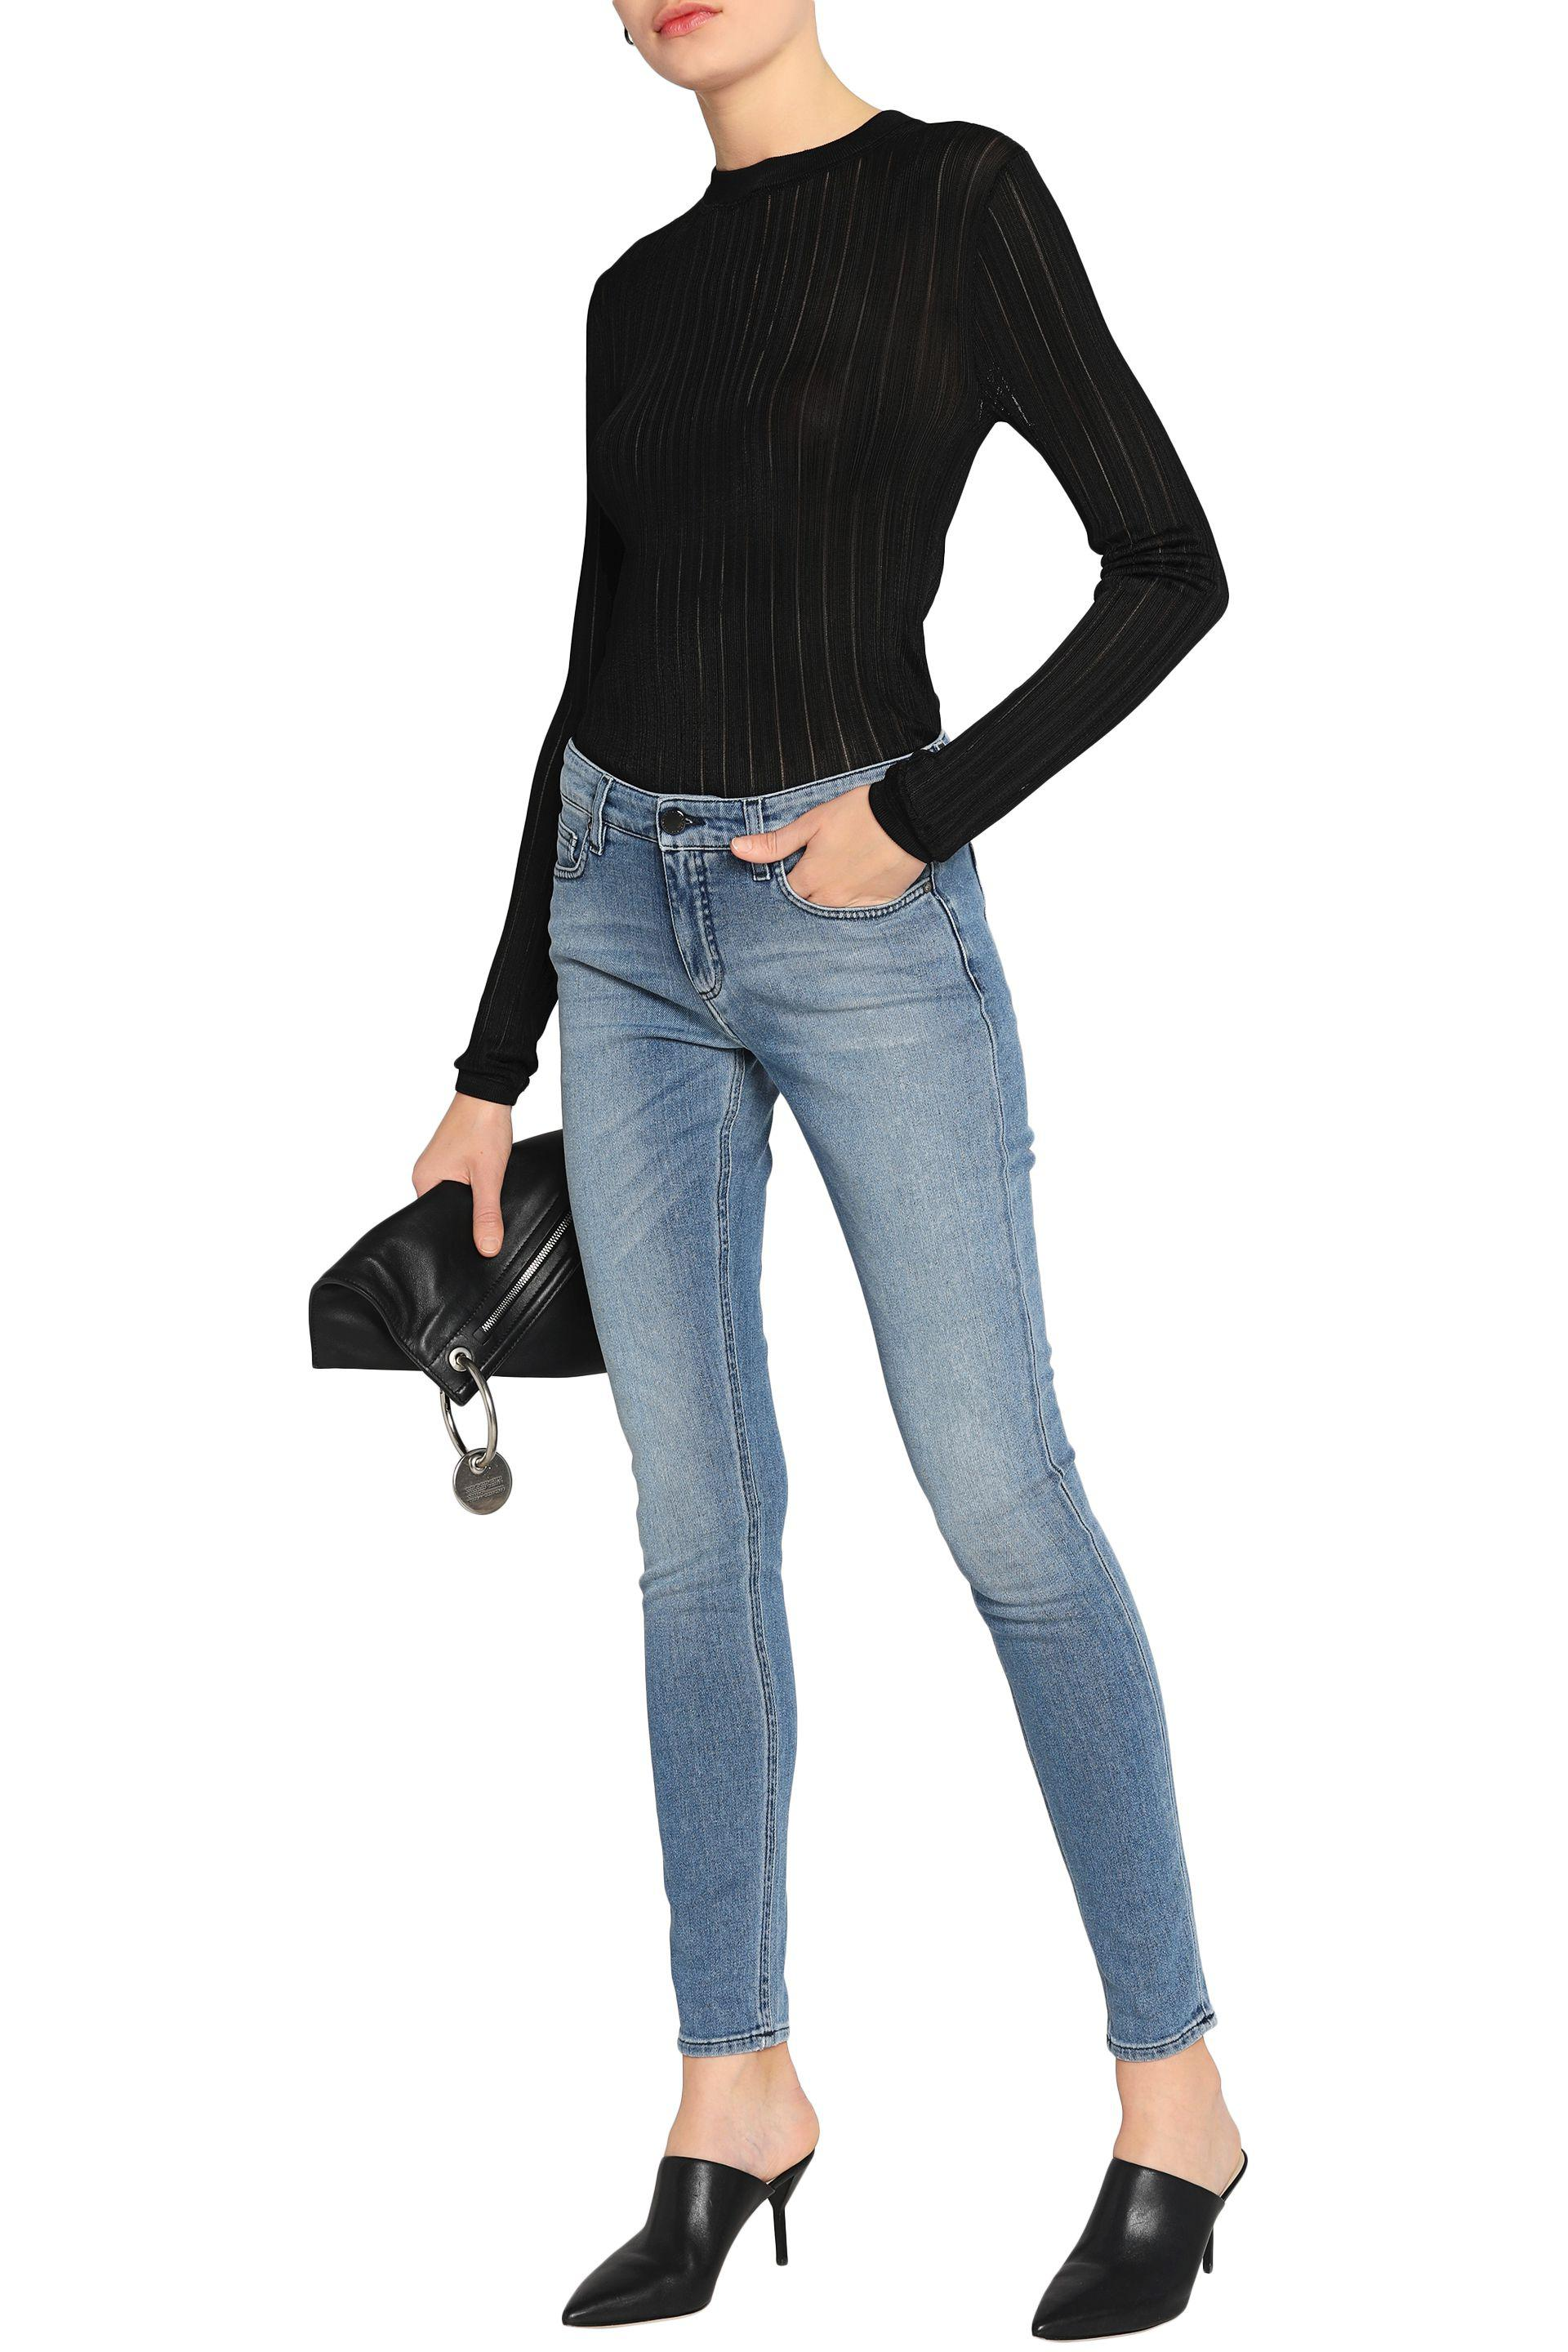 Victoria, Victoria Beckham Faded Mid-rise Skinny Jeans Light Denim in Blue